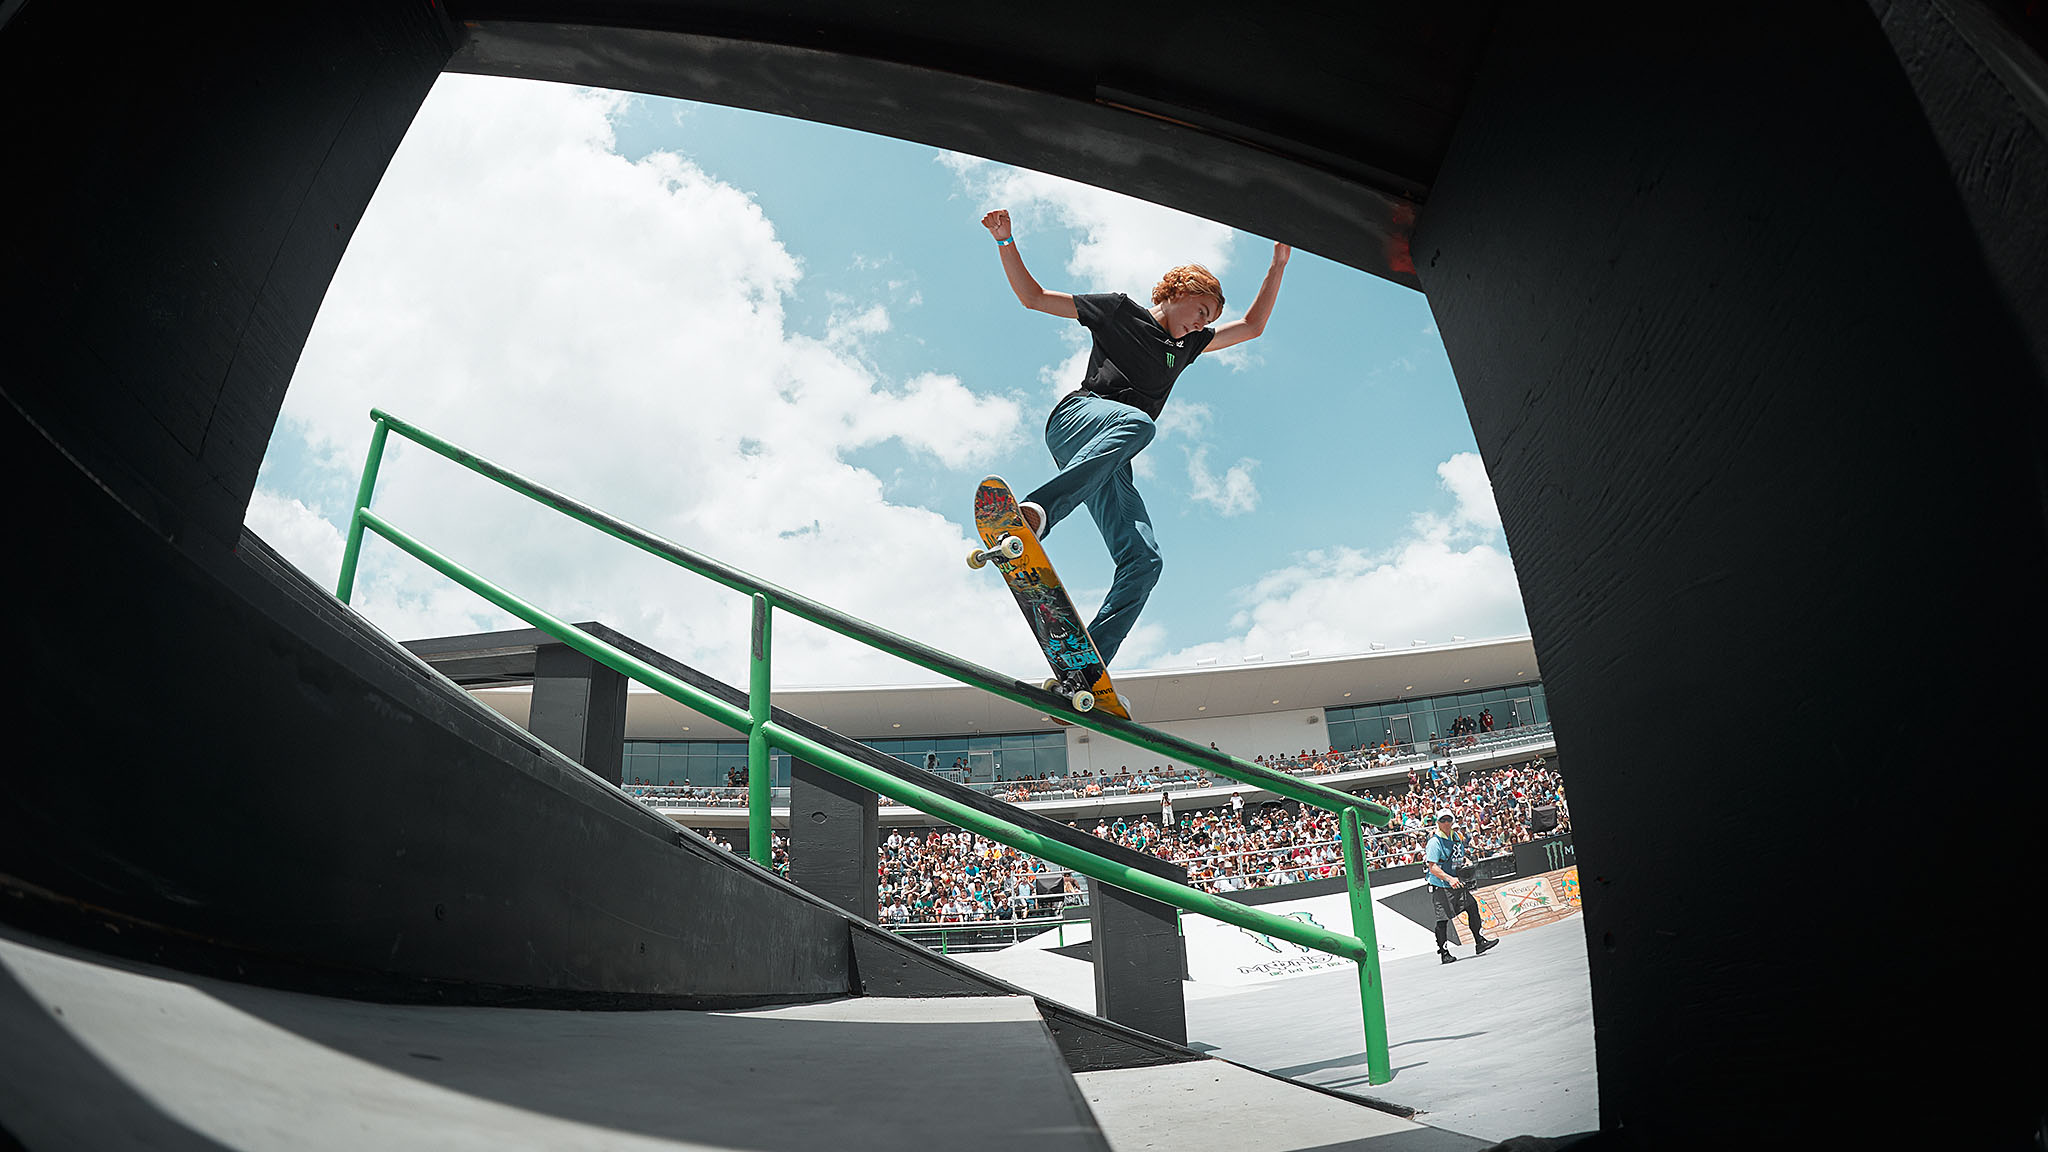 X Games Munich 2013 Skateboard Park gold medalist Curren Caples was an alternate for Skateboard Street coming into Austin. Not only did he make it into elims at the last minute, he beat out a heated field of heavy-hitting street skateboarders to qualify for the final on Sunday.